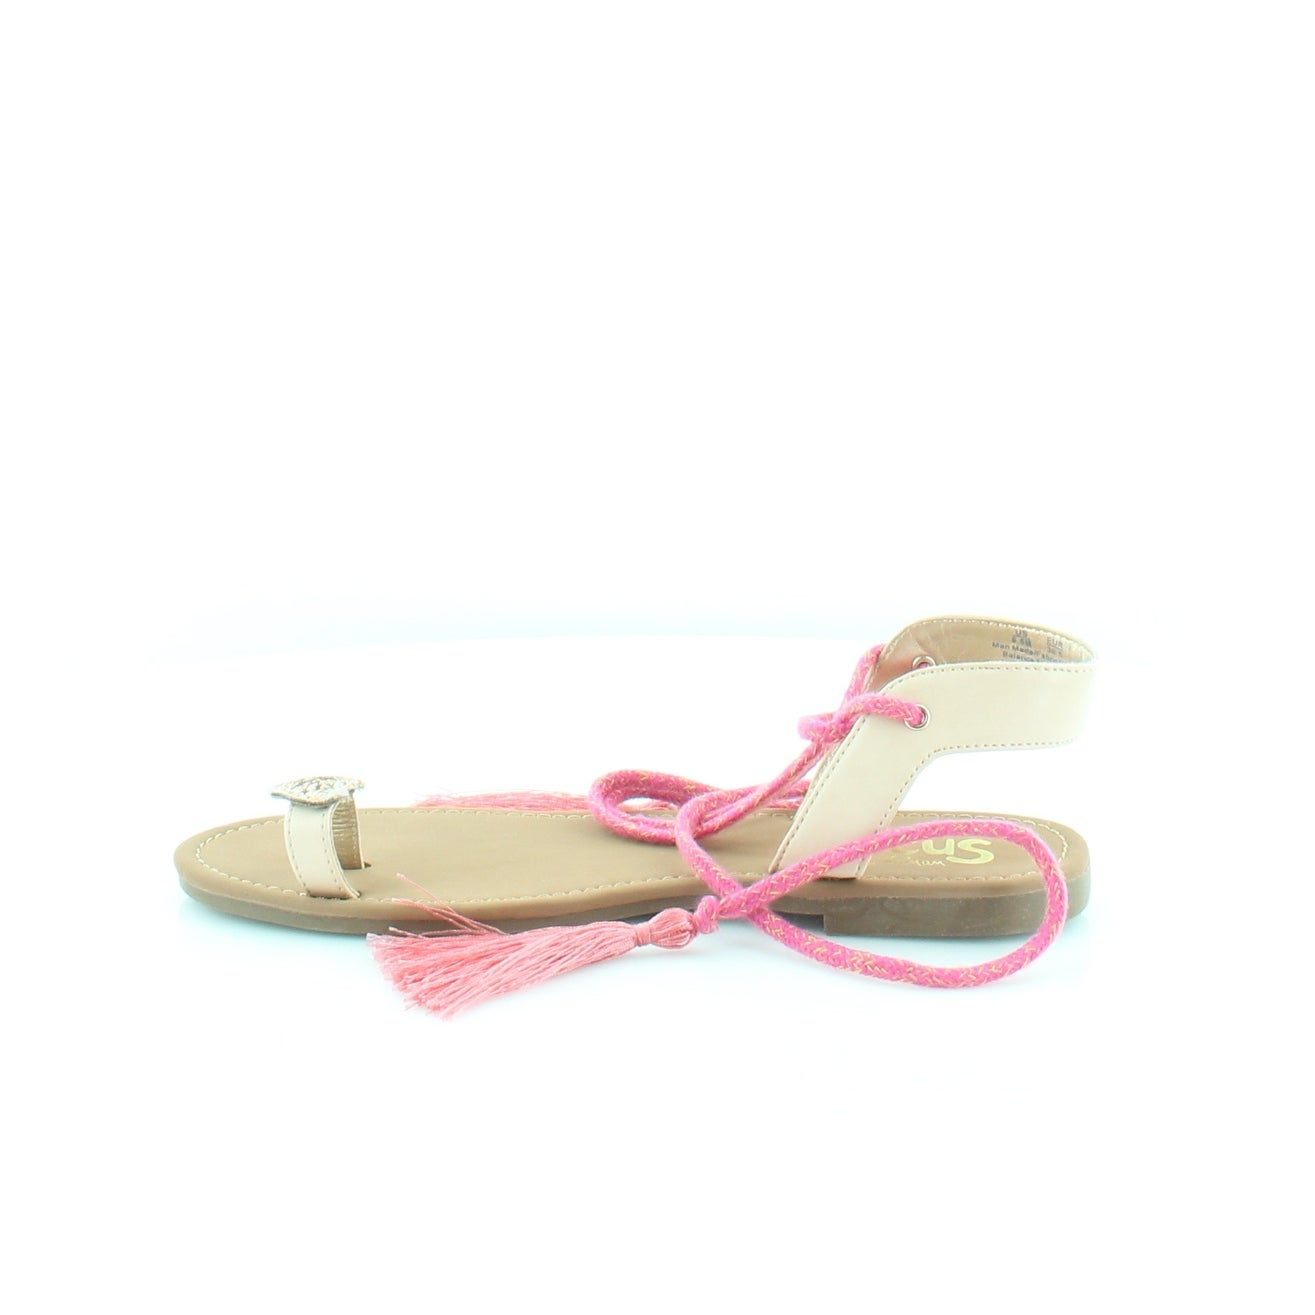 55f5c2f5e Circus by Sam Edelman Binx Women s Sandals   Flip Flops Natural - Free  Shipping On Orders Over  45 - Overstock.com - 27367219